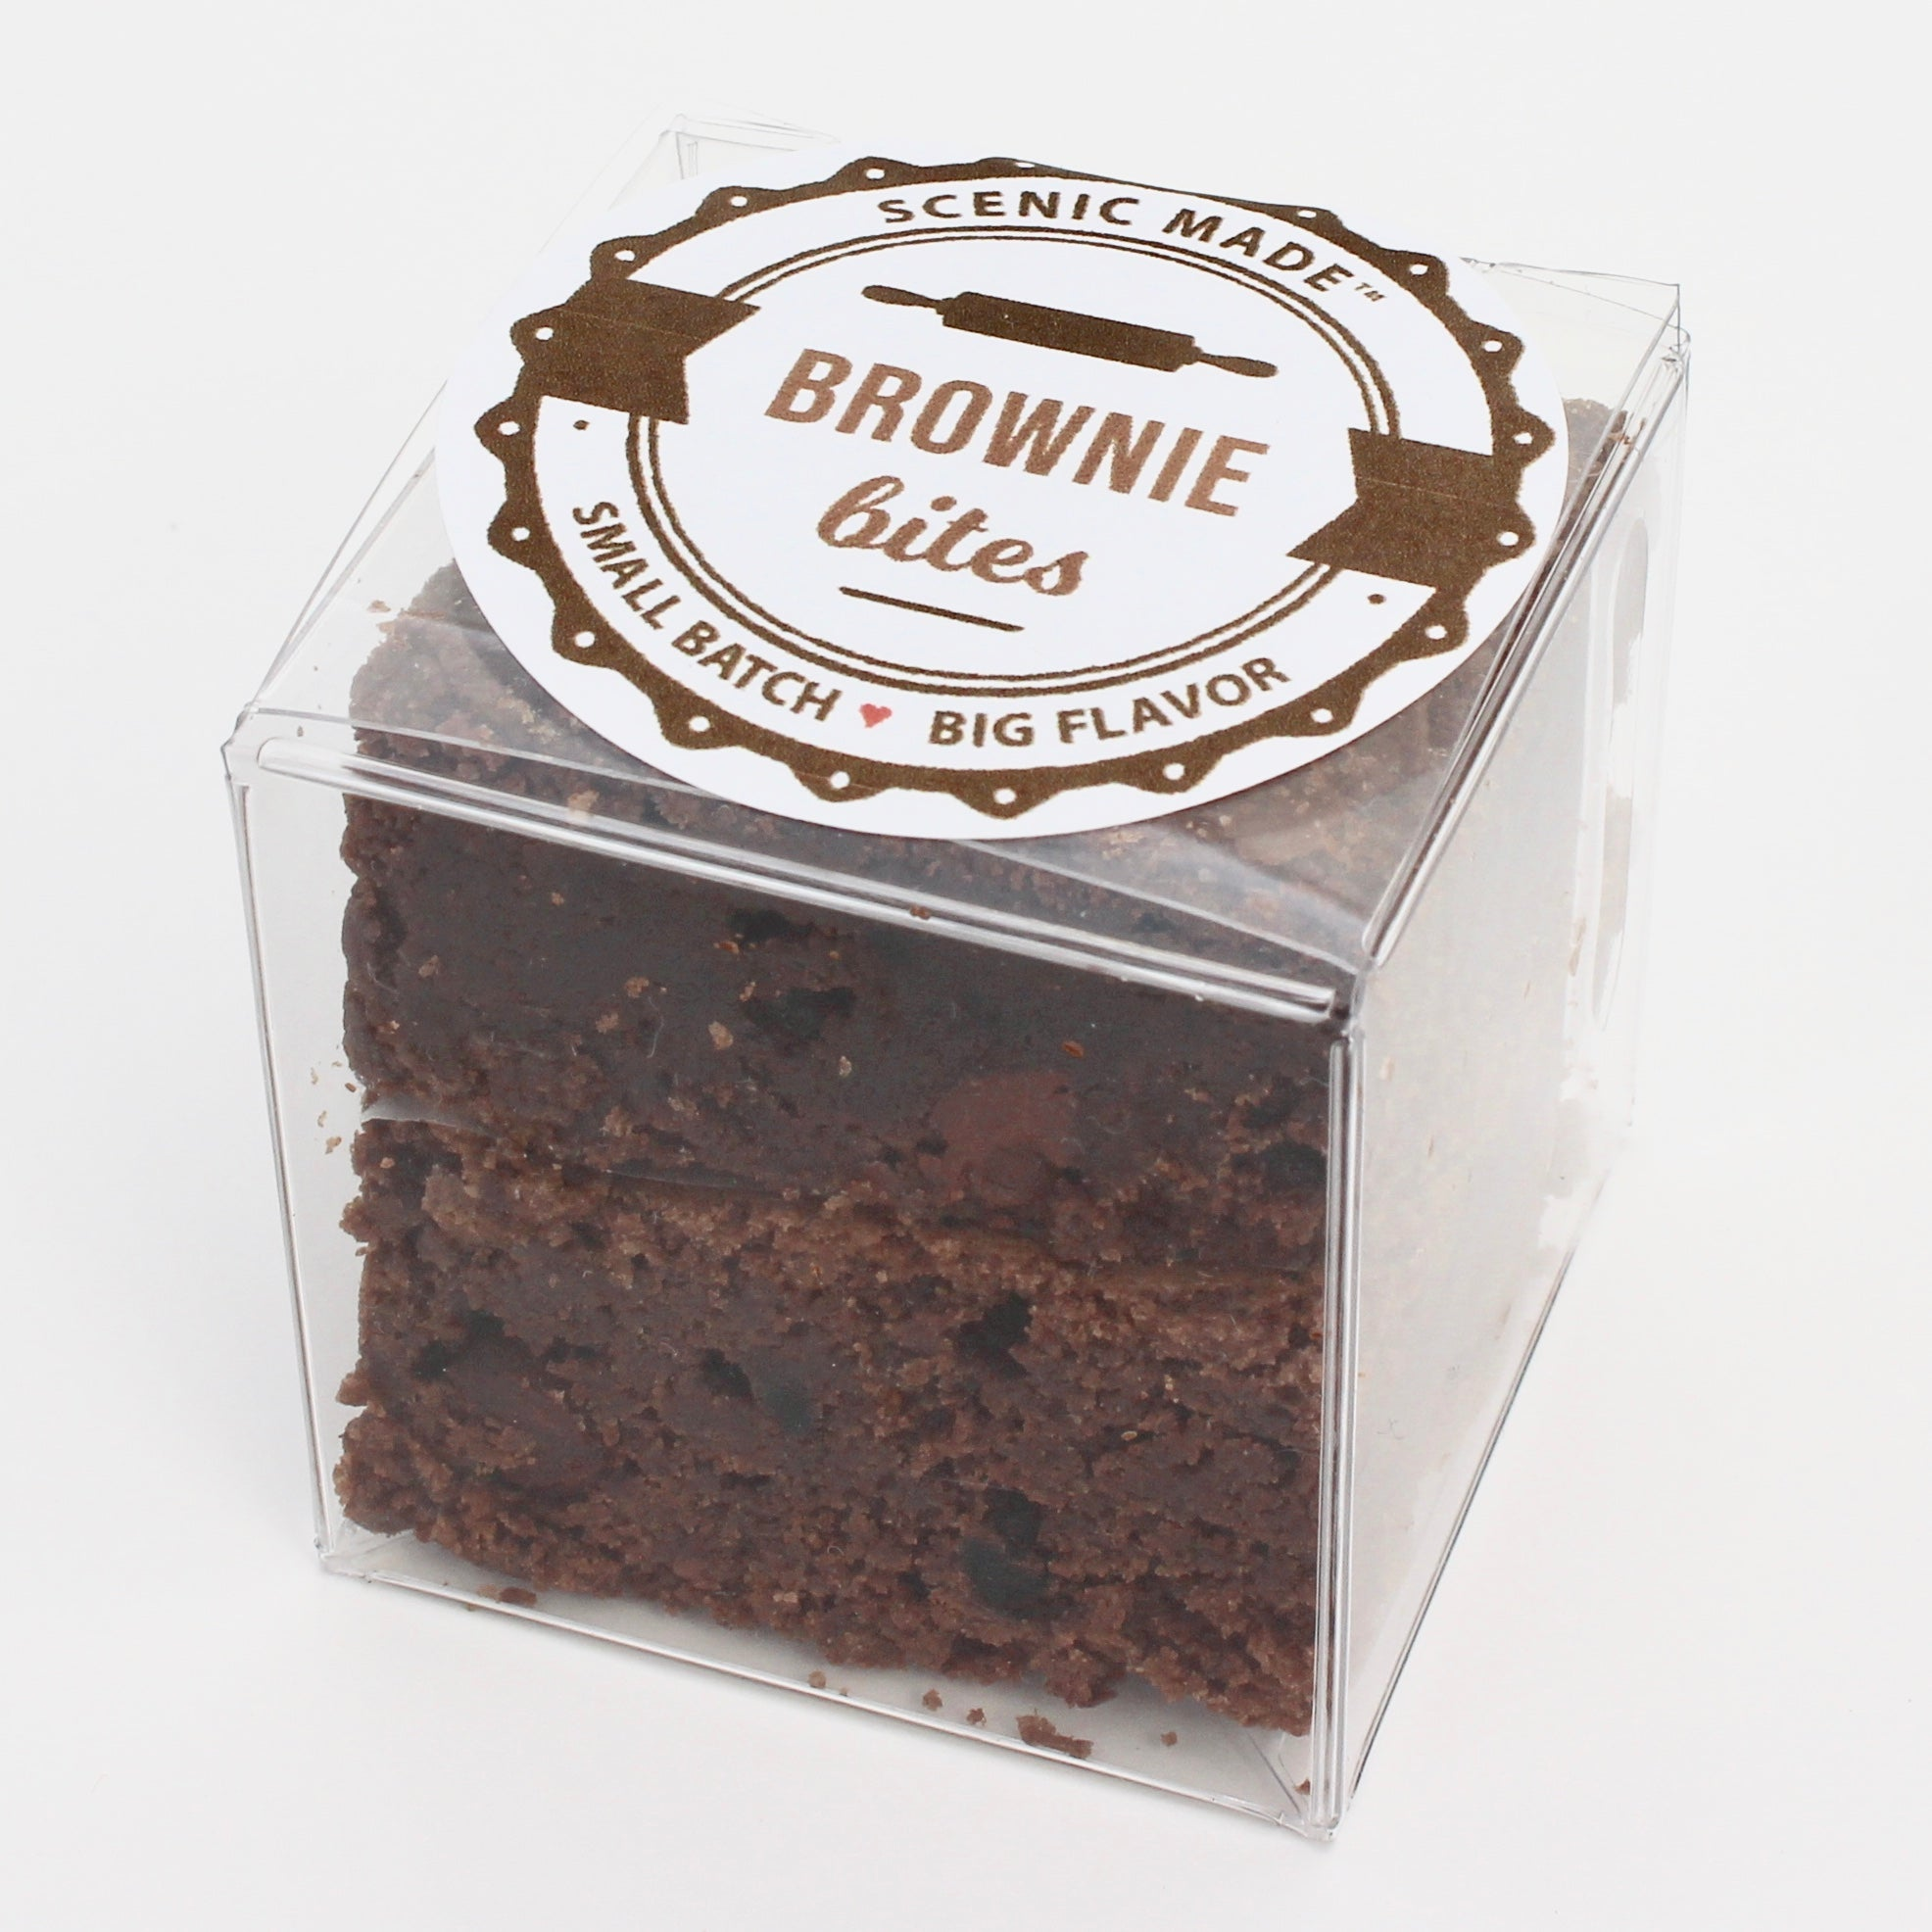 2 decadent brownie bites, packed in a clear, square, food-safe container with an attractive label on top.